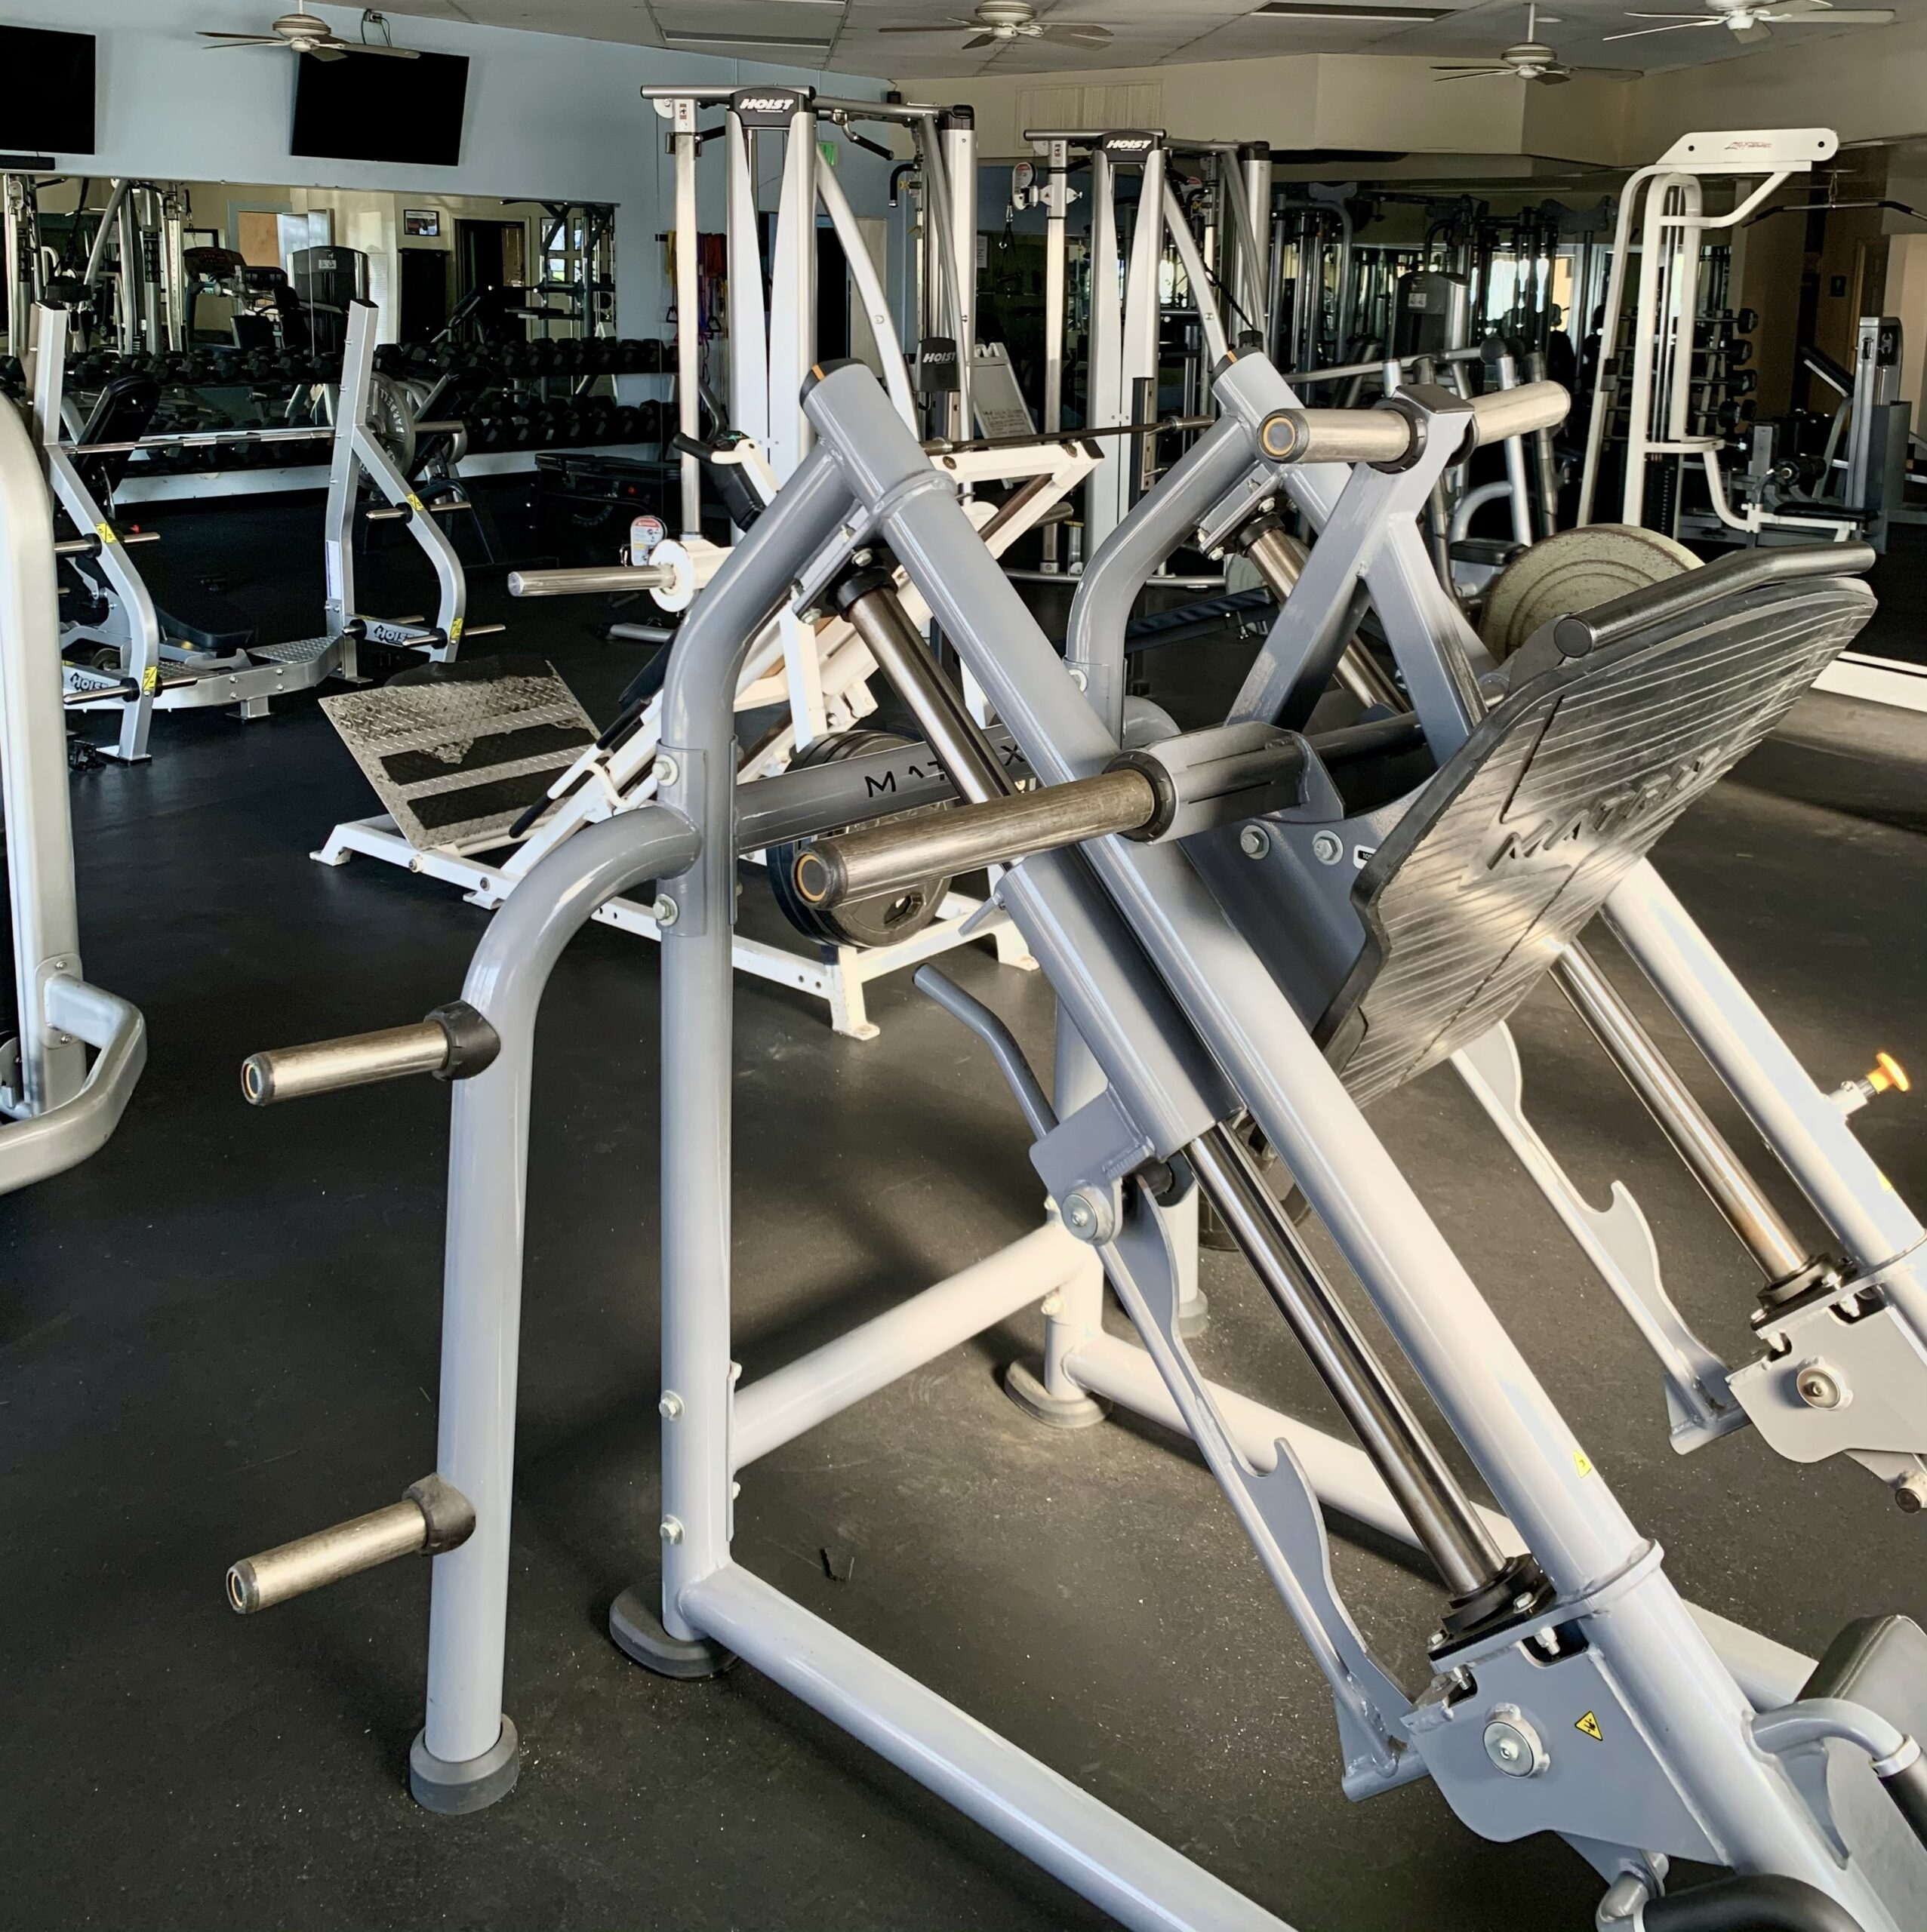 Open gym layout space TruSelf Sporting Club